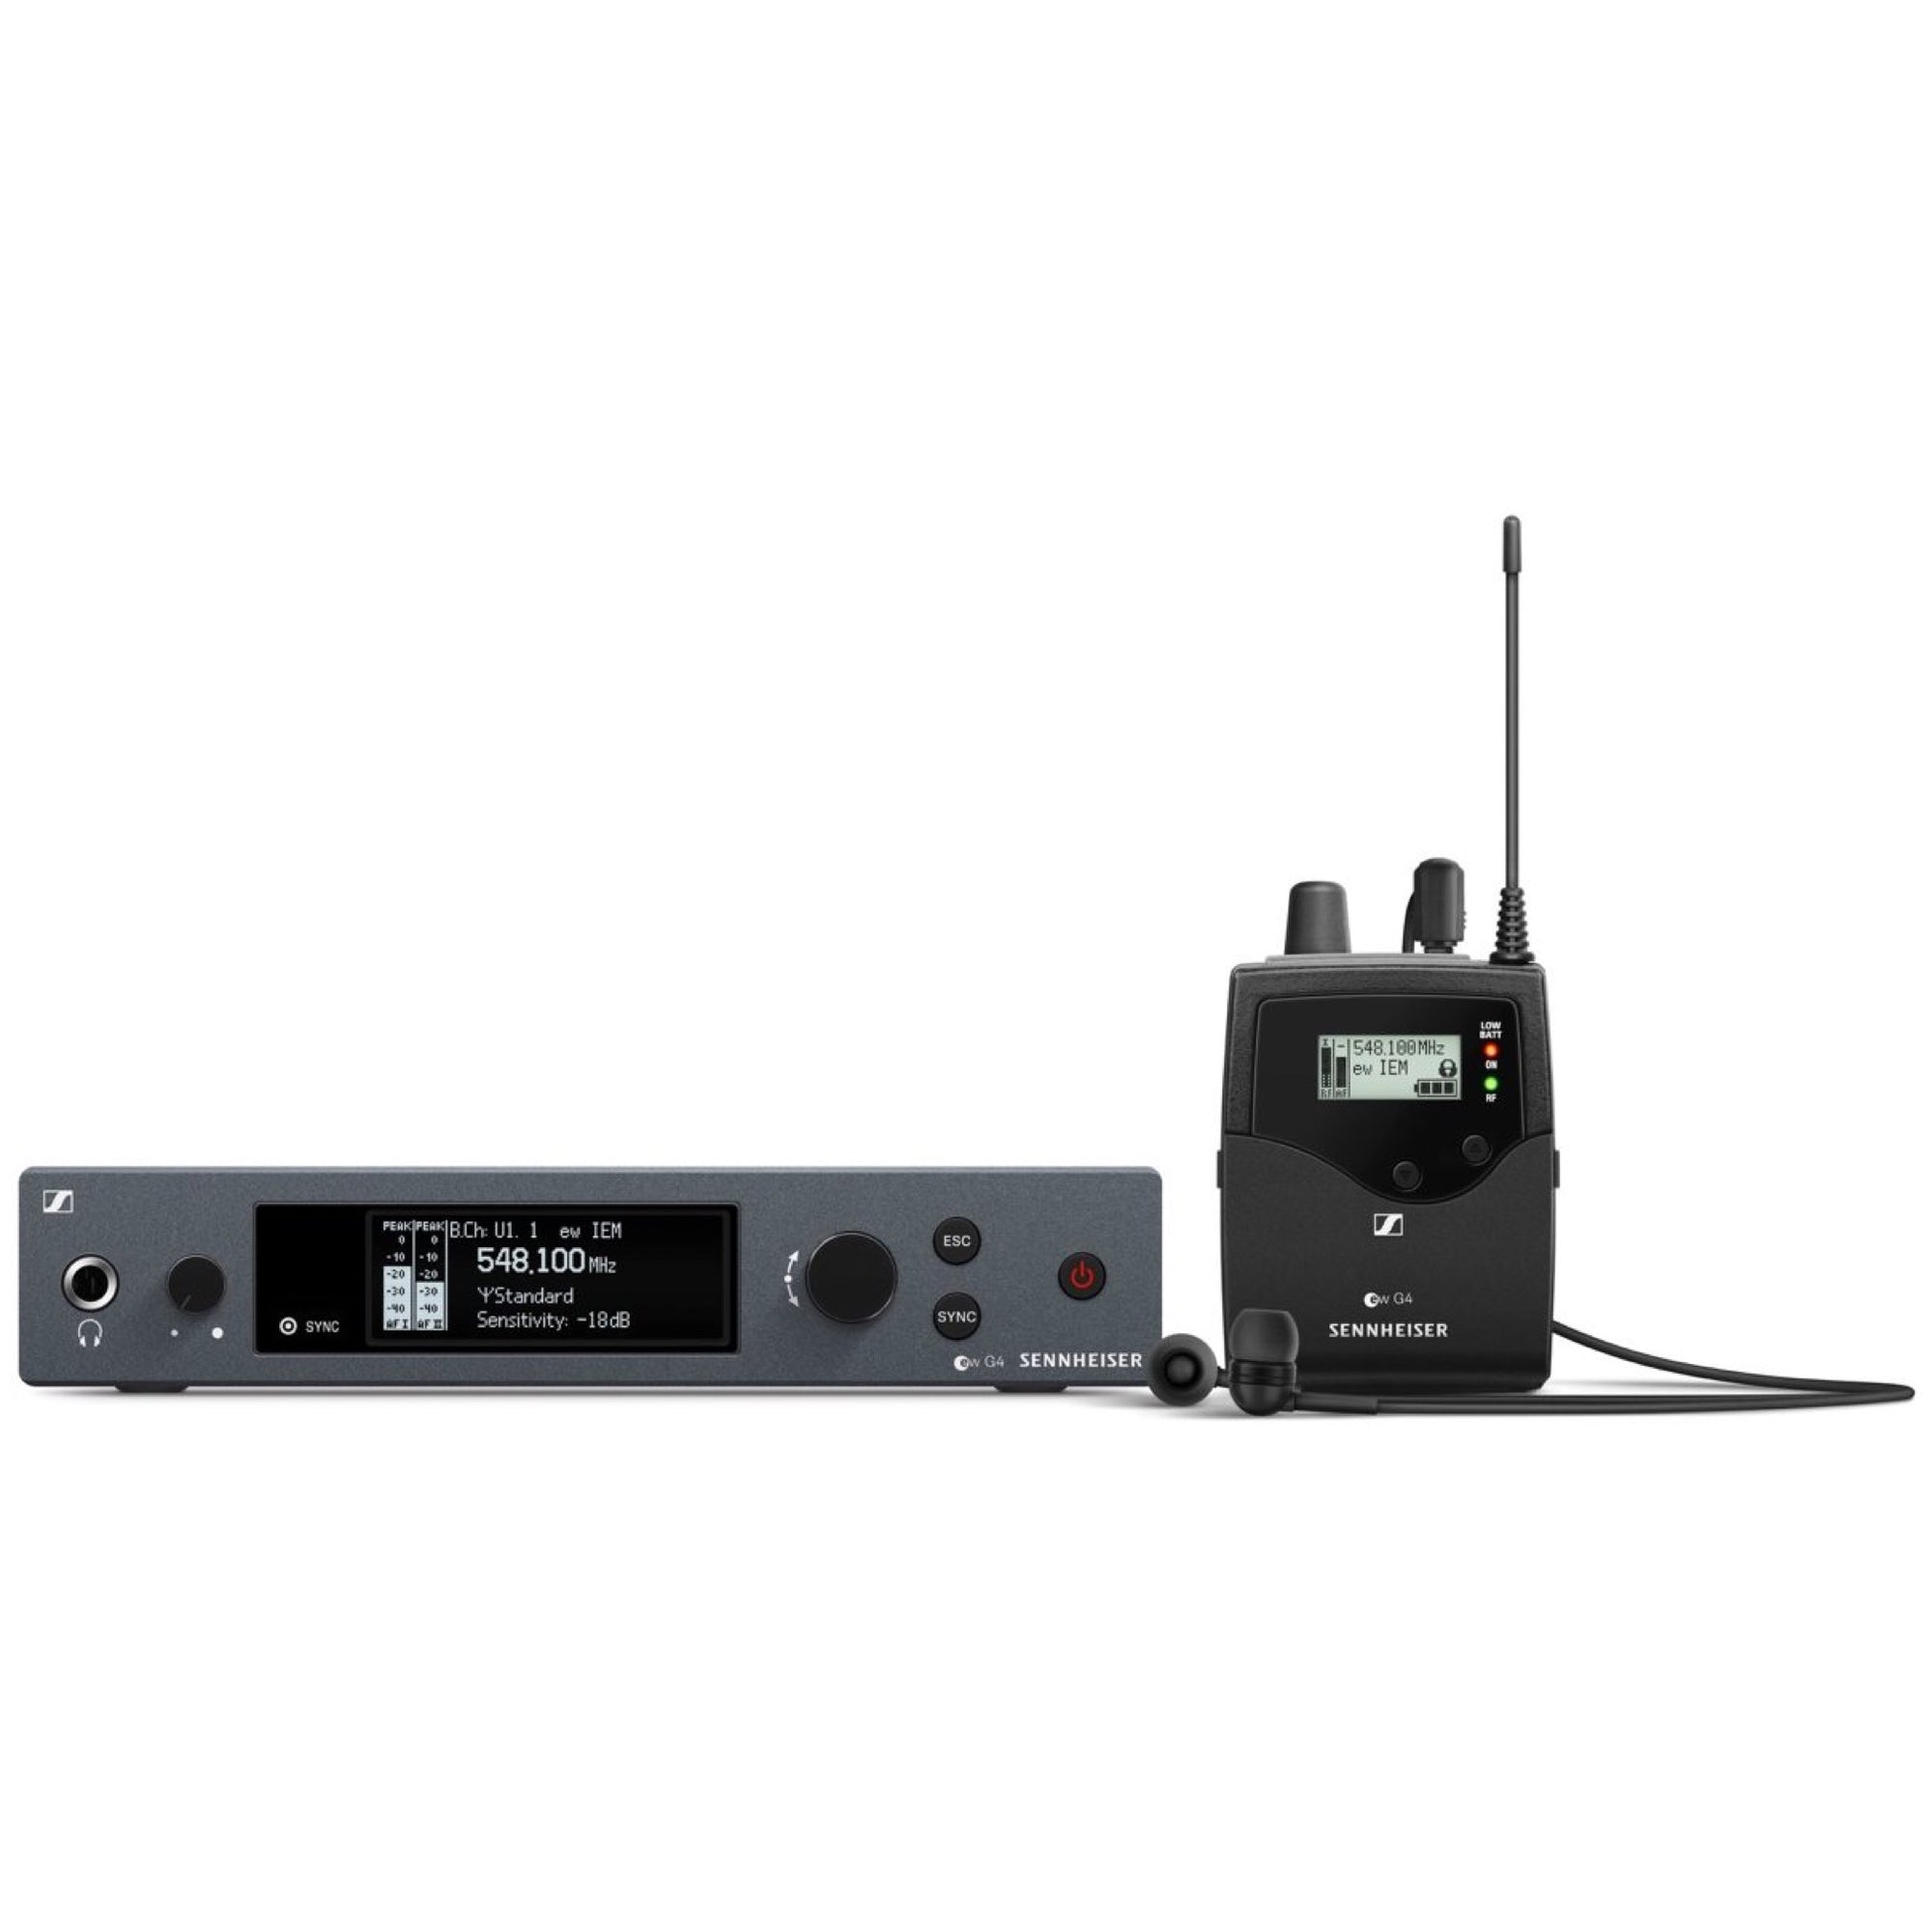 Sennheiser EW IEM G4 Wireless In-Ear Monitor System, Band G (566-608 MHz)